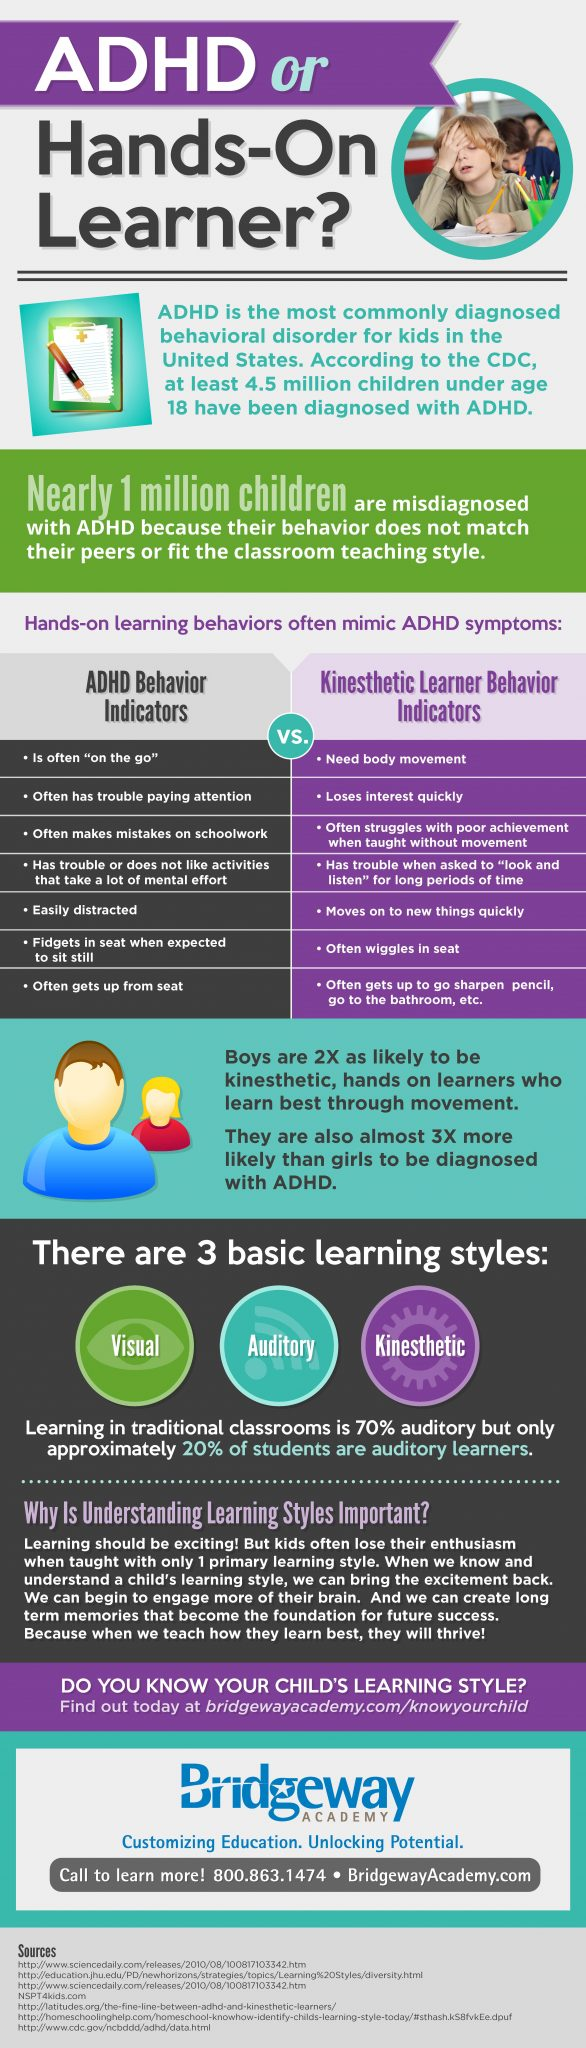 Does my child have ADHD, Does My Child have ADHD or are They a Kinesthetic Learner?